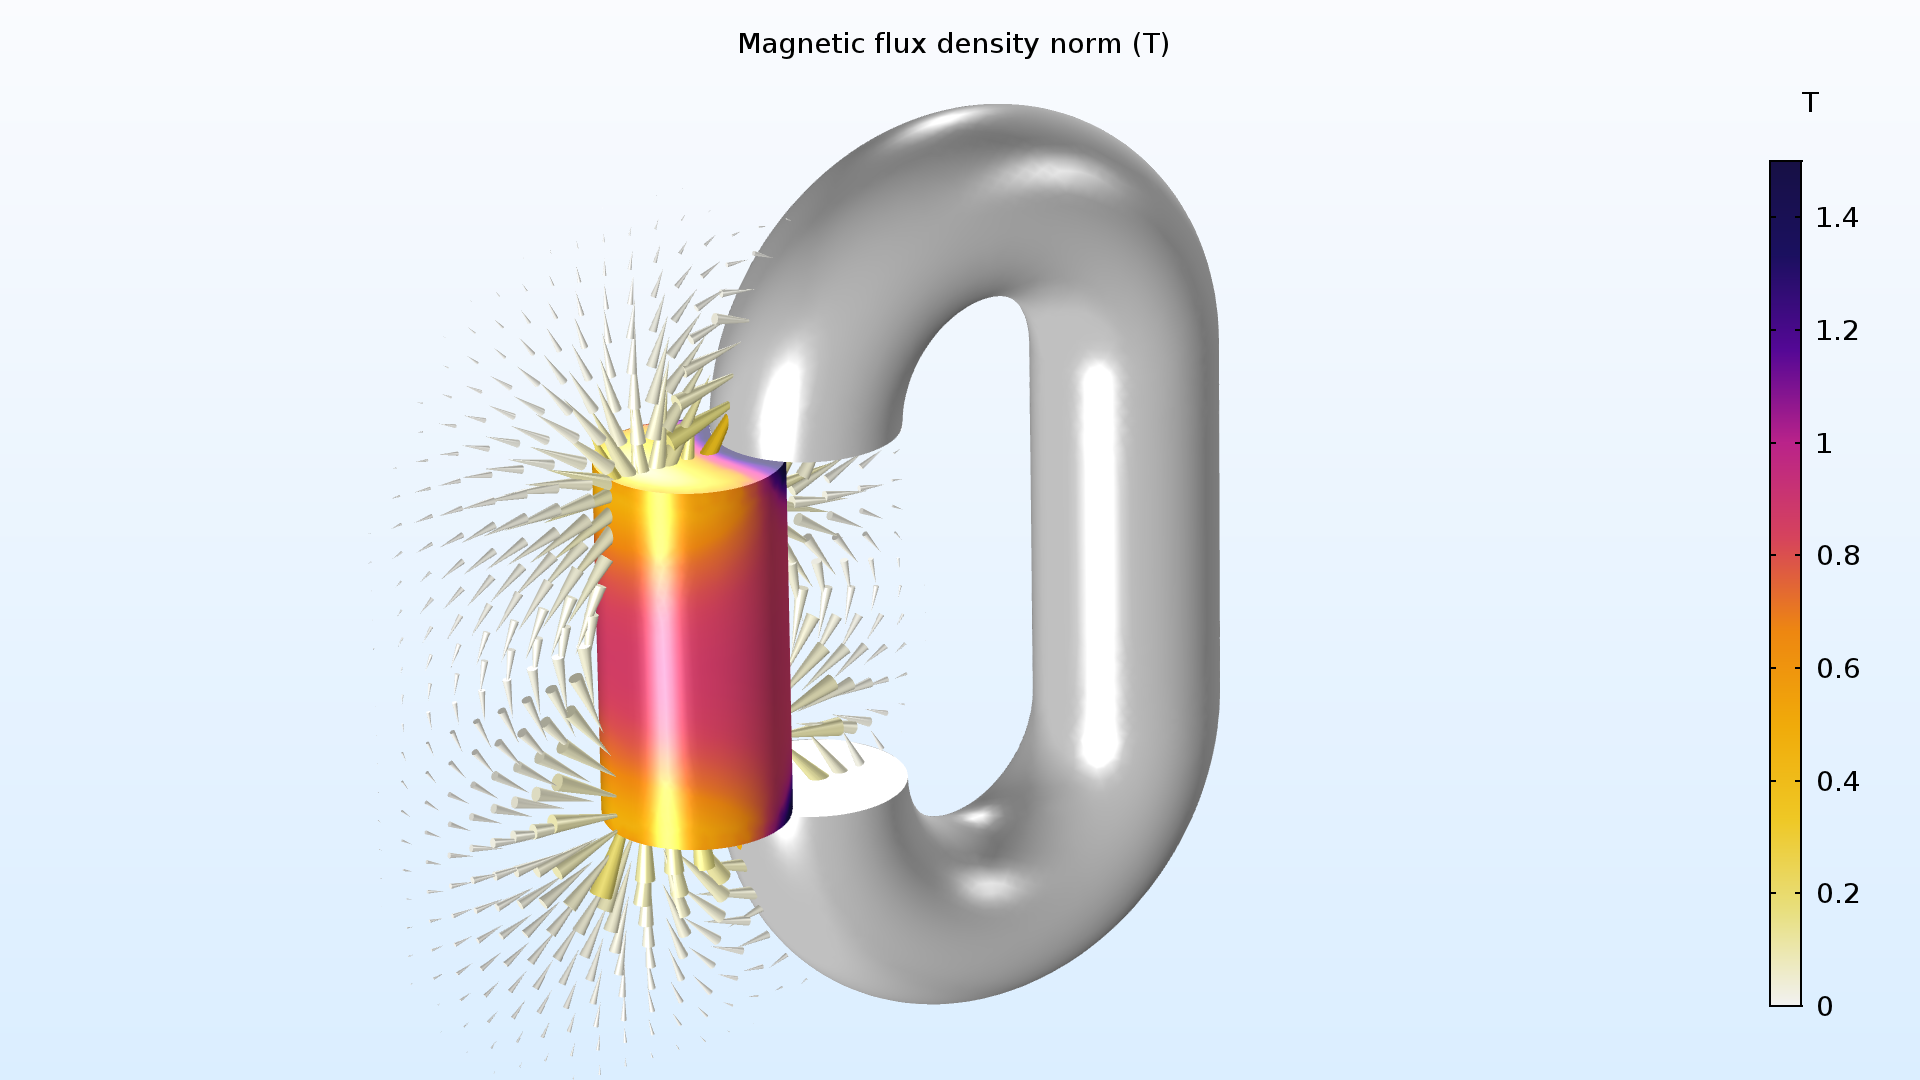 Model the demagnetization of permanent magnets in the AC/DC Module.